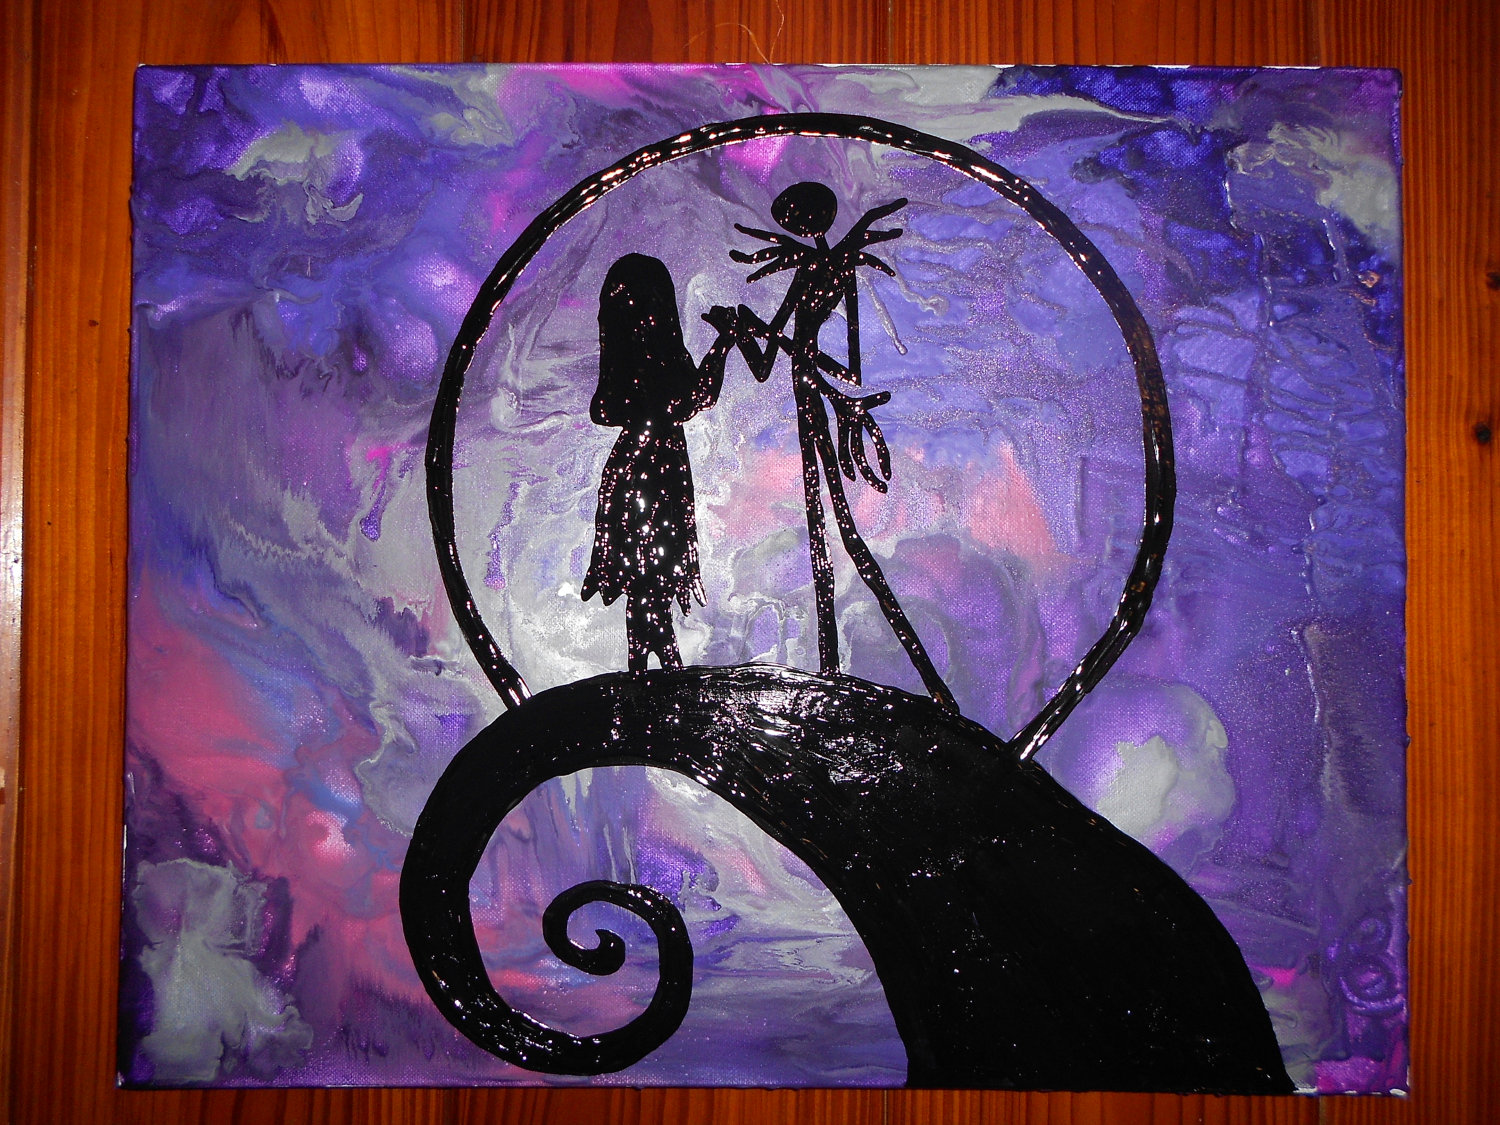 Jack Sally Inspired Nightmare Before Christmas Melted Crayon